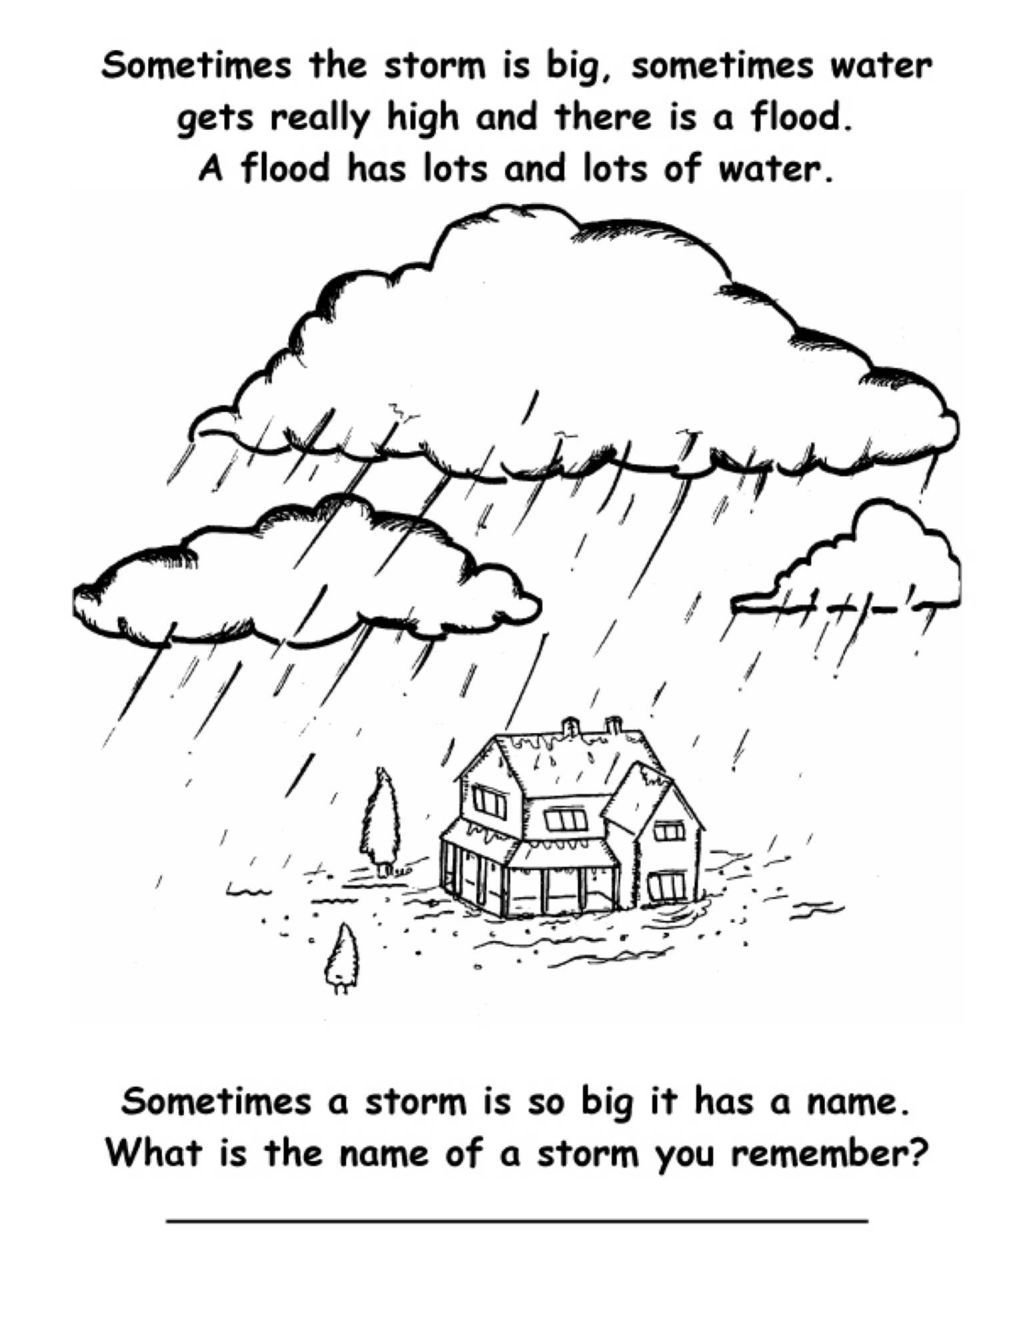 Free Superstorm Sandy Coloring Book Can Help Kids Cope